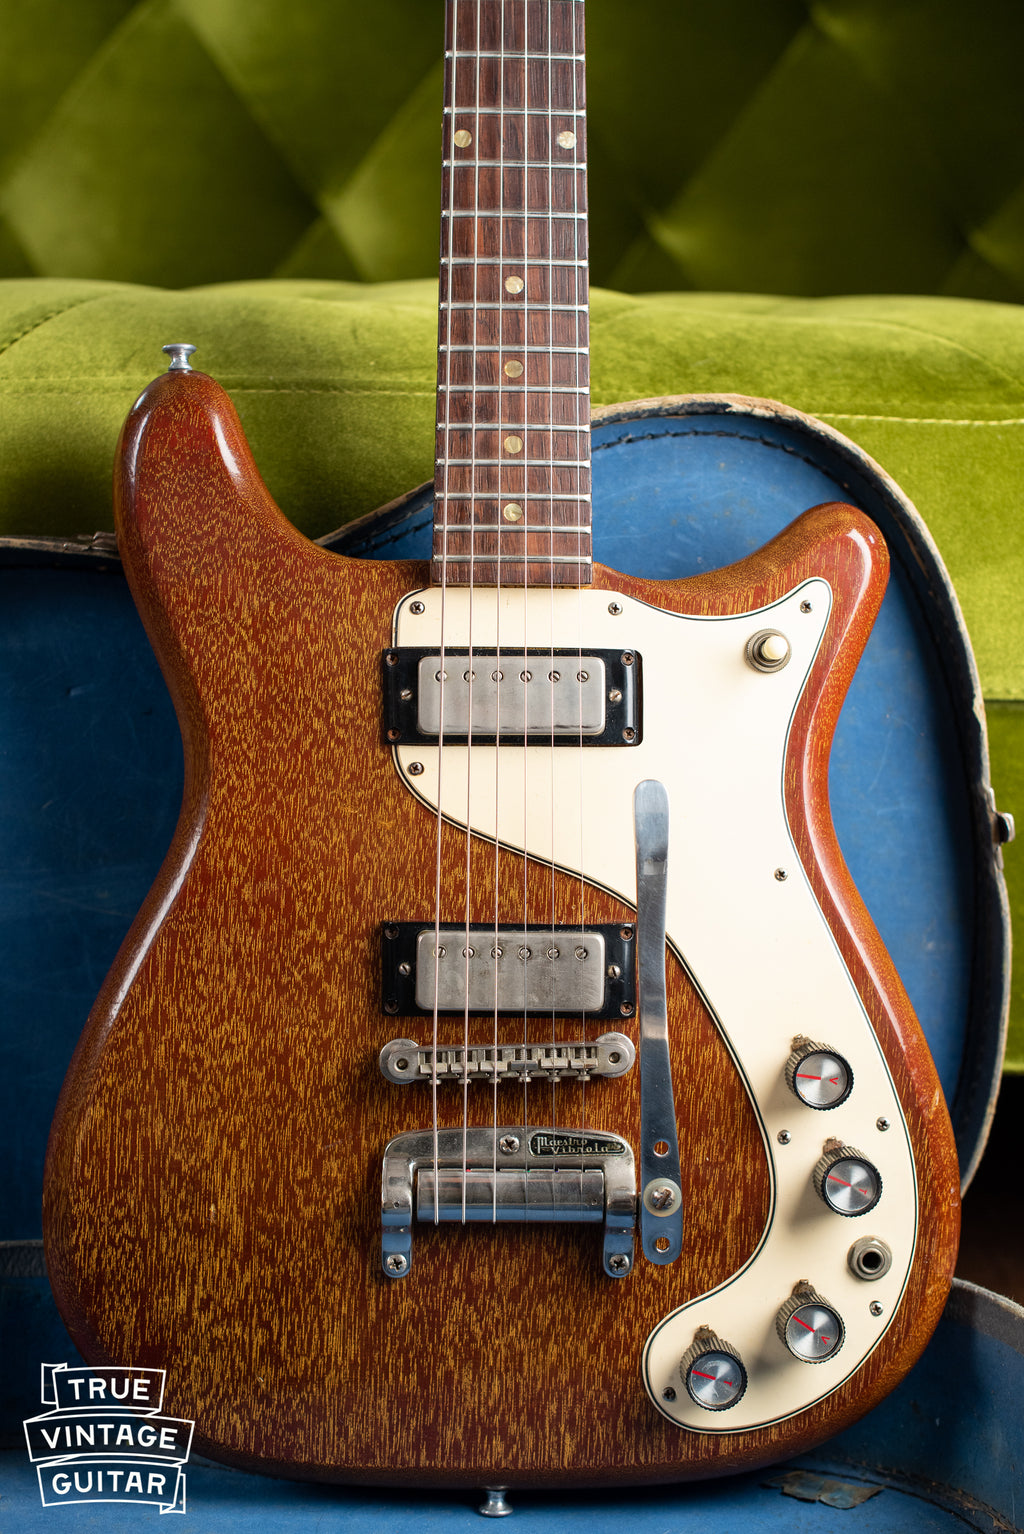 1965 Epiphone Wilshire Red Fox body